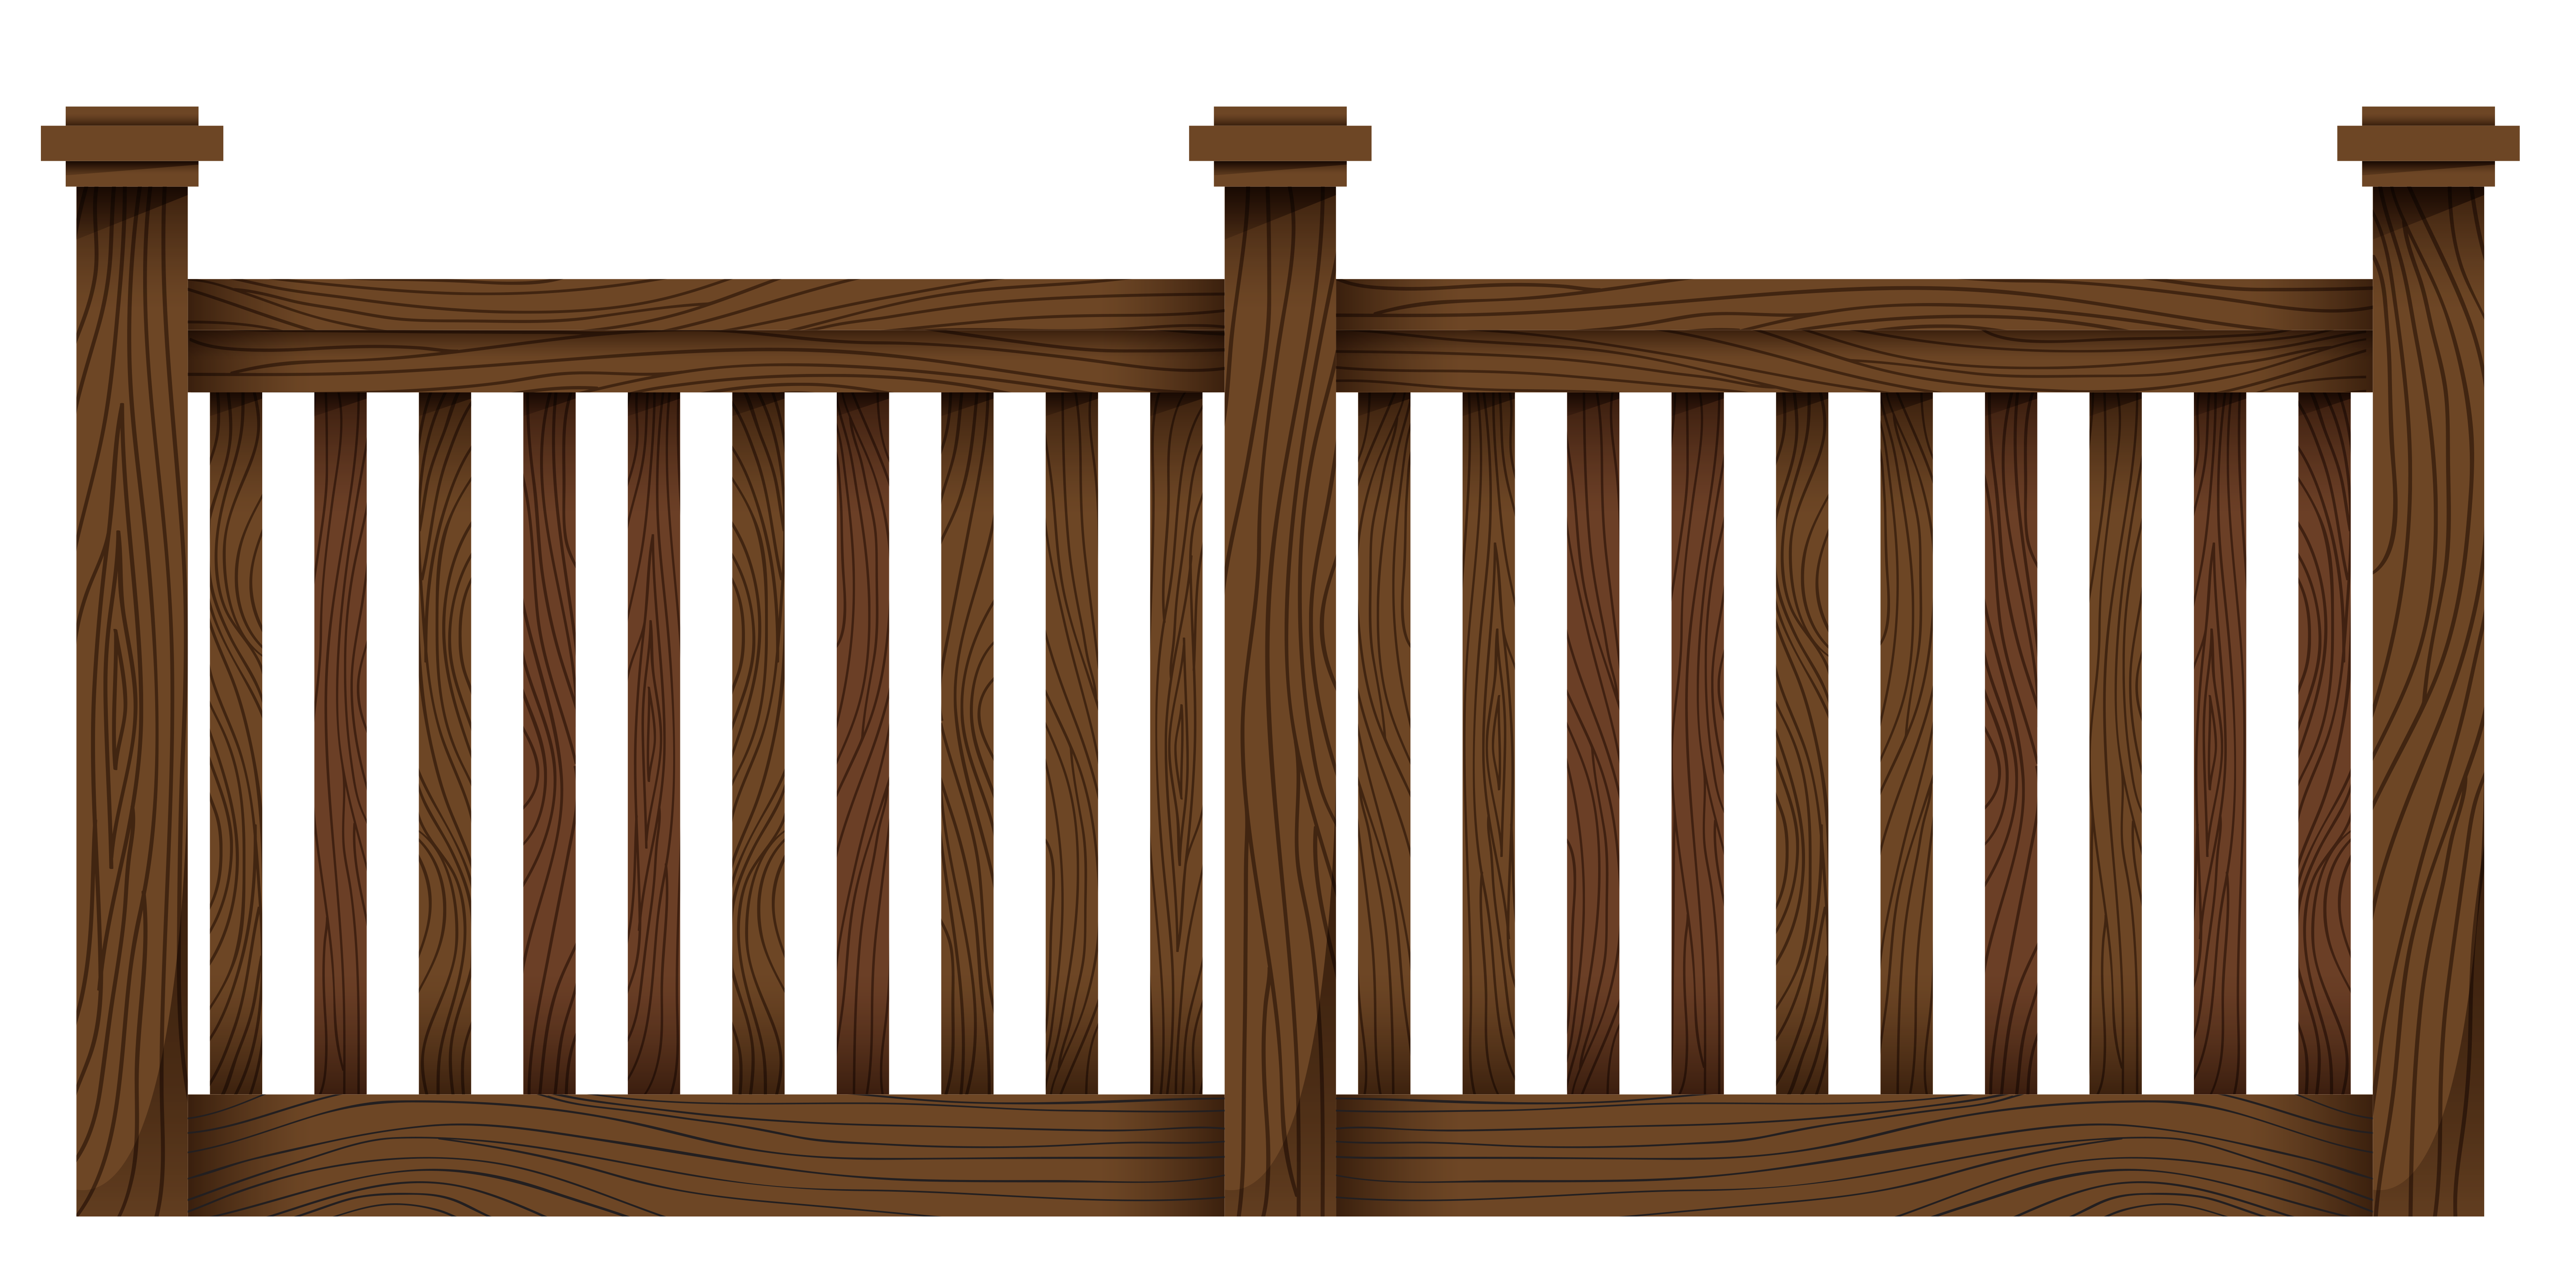 Transparent_Wooden_Fence_Clipart_Picture.png?m=1429546991.